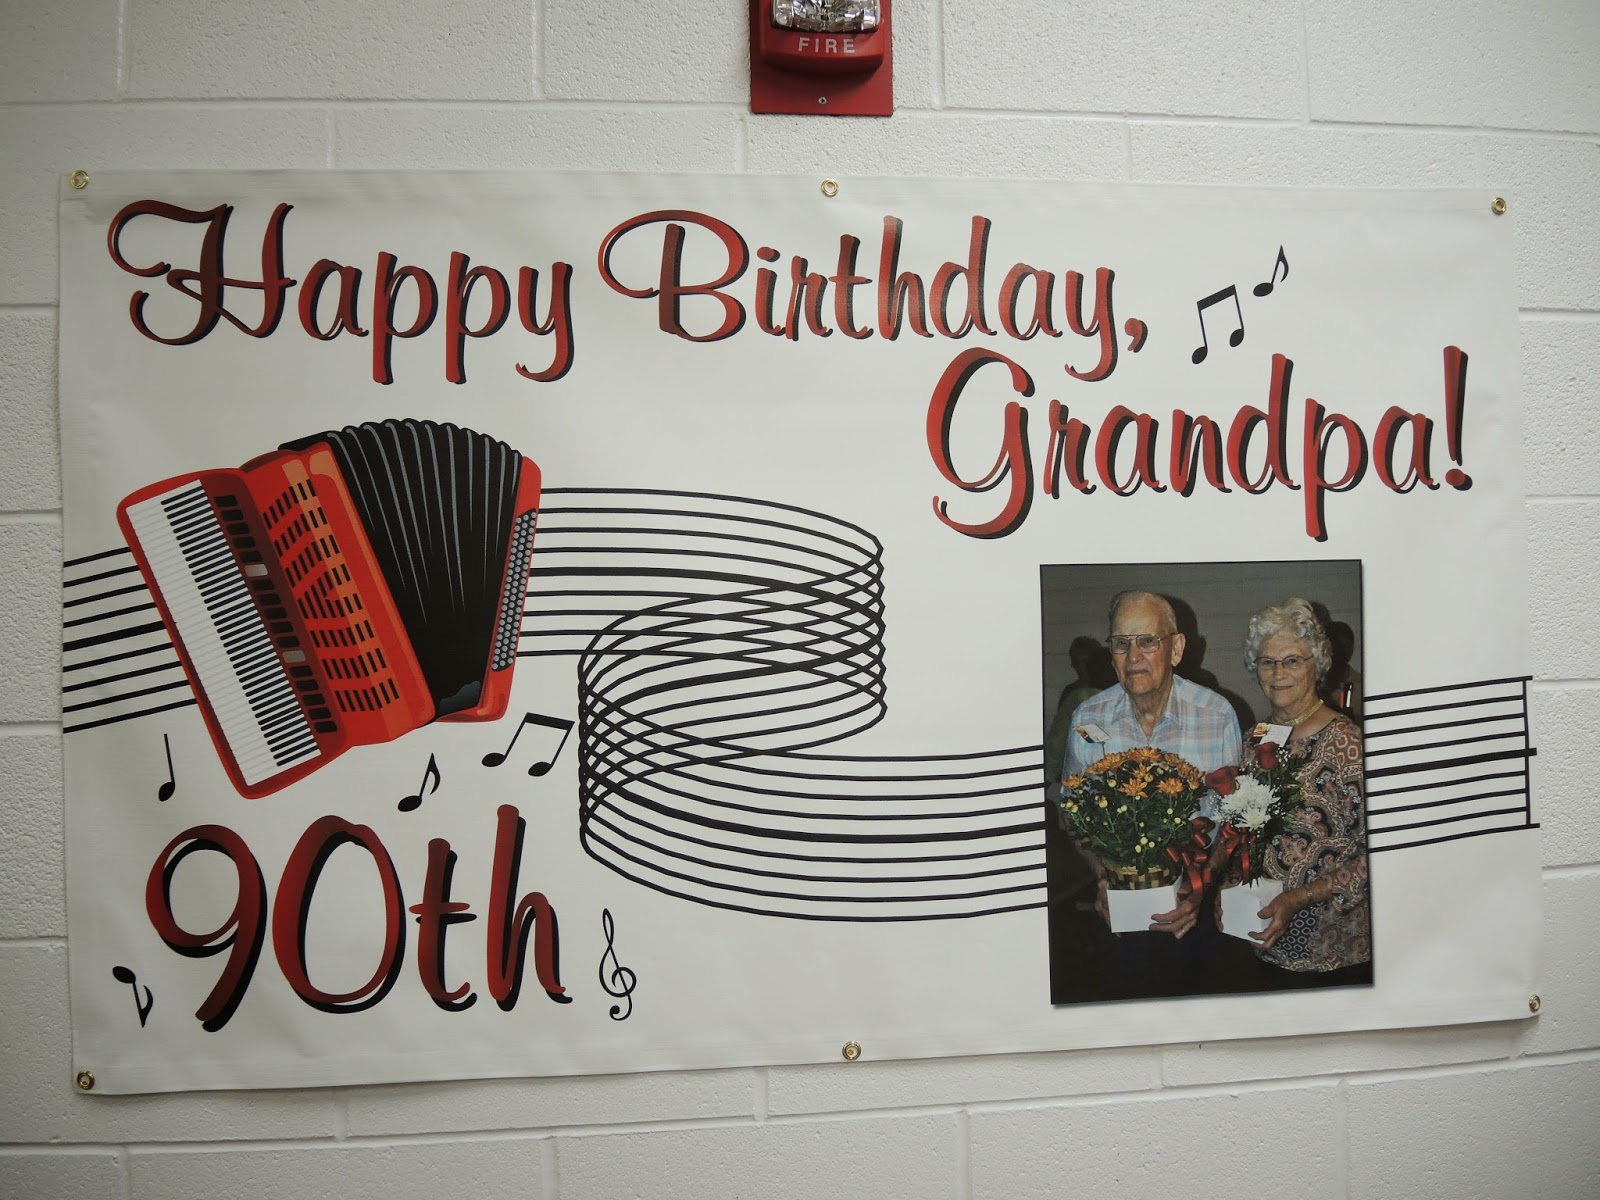 90th Birthday Banner - Designed & Printed by Banners.com